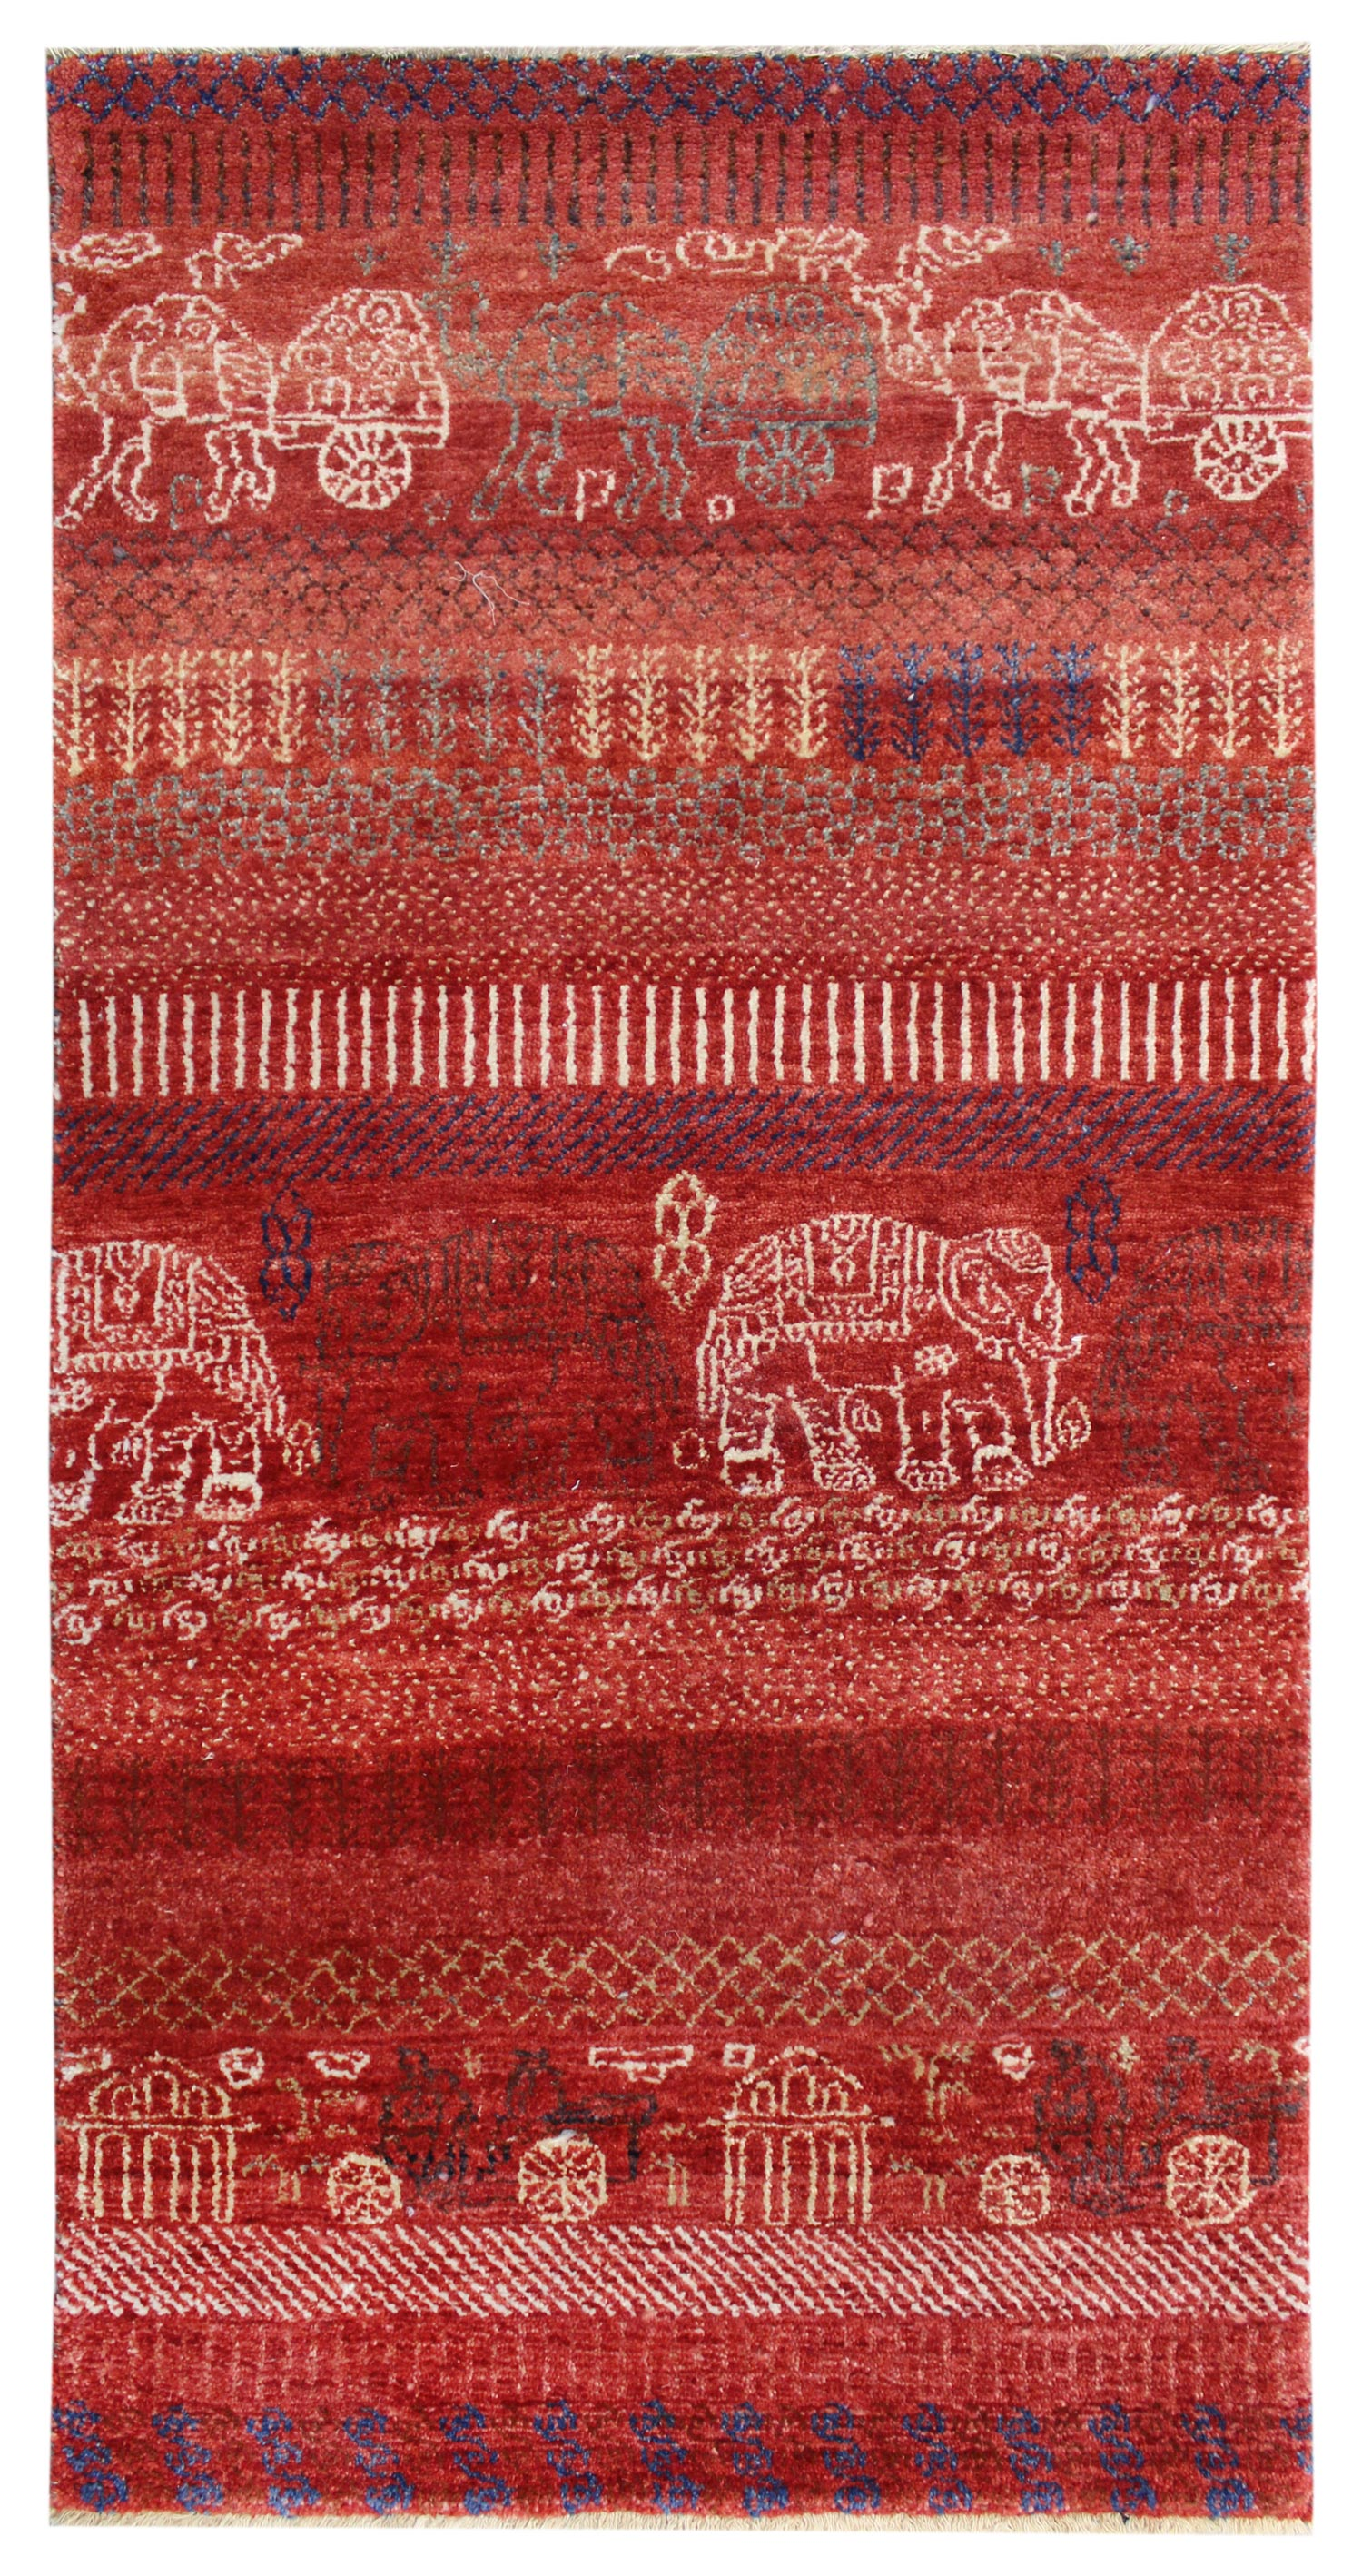 RickshawTransitional Rug